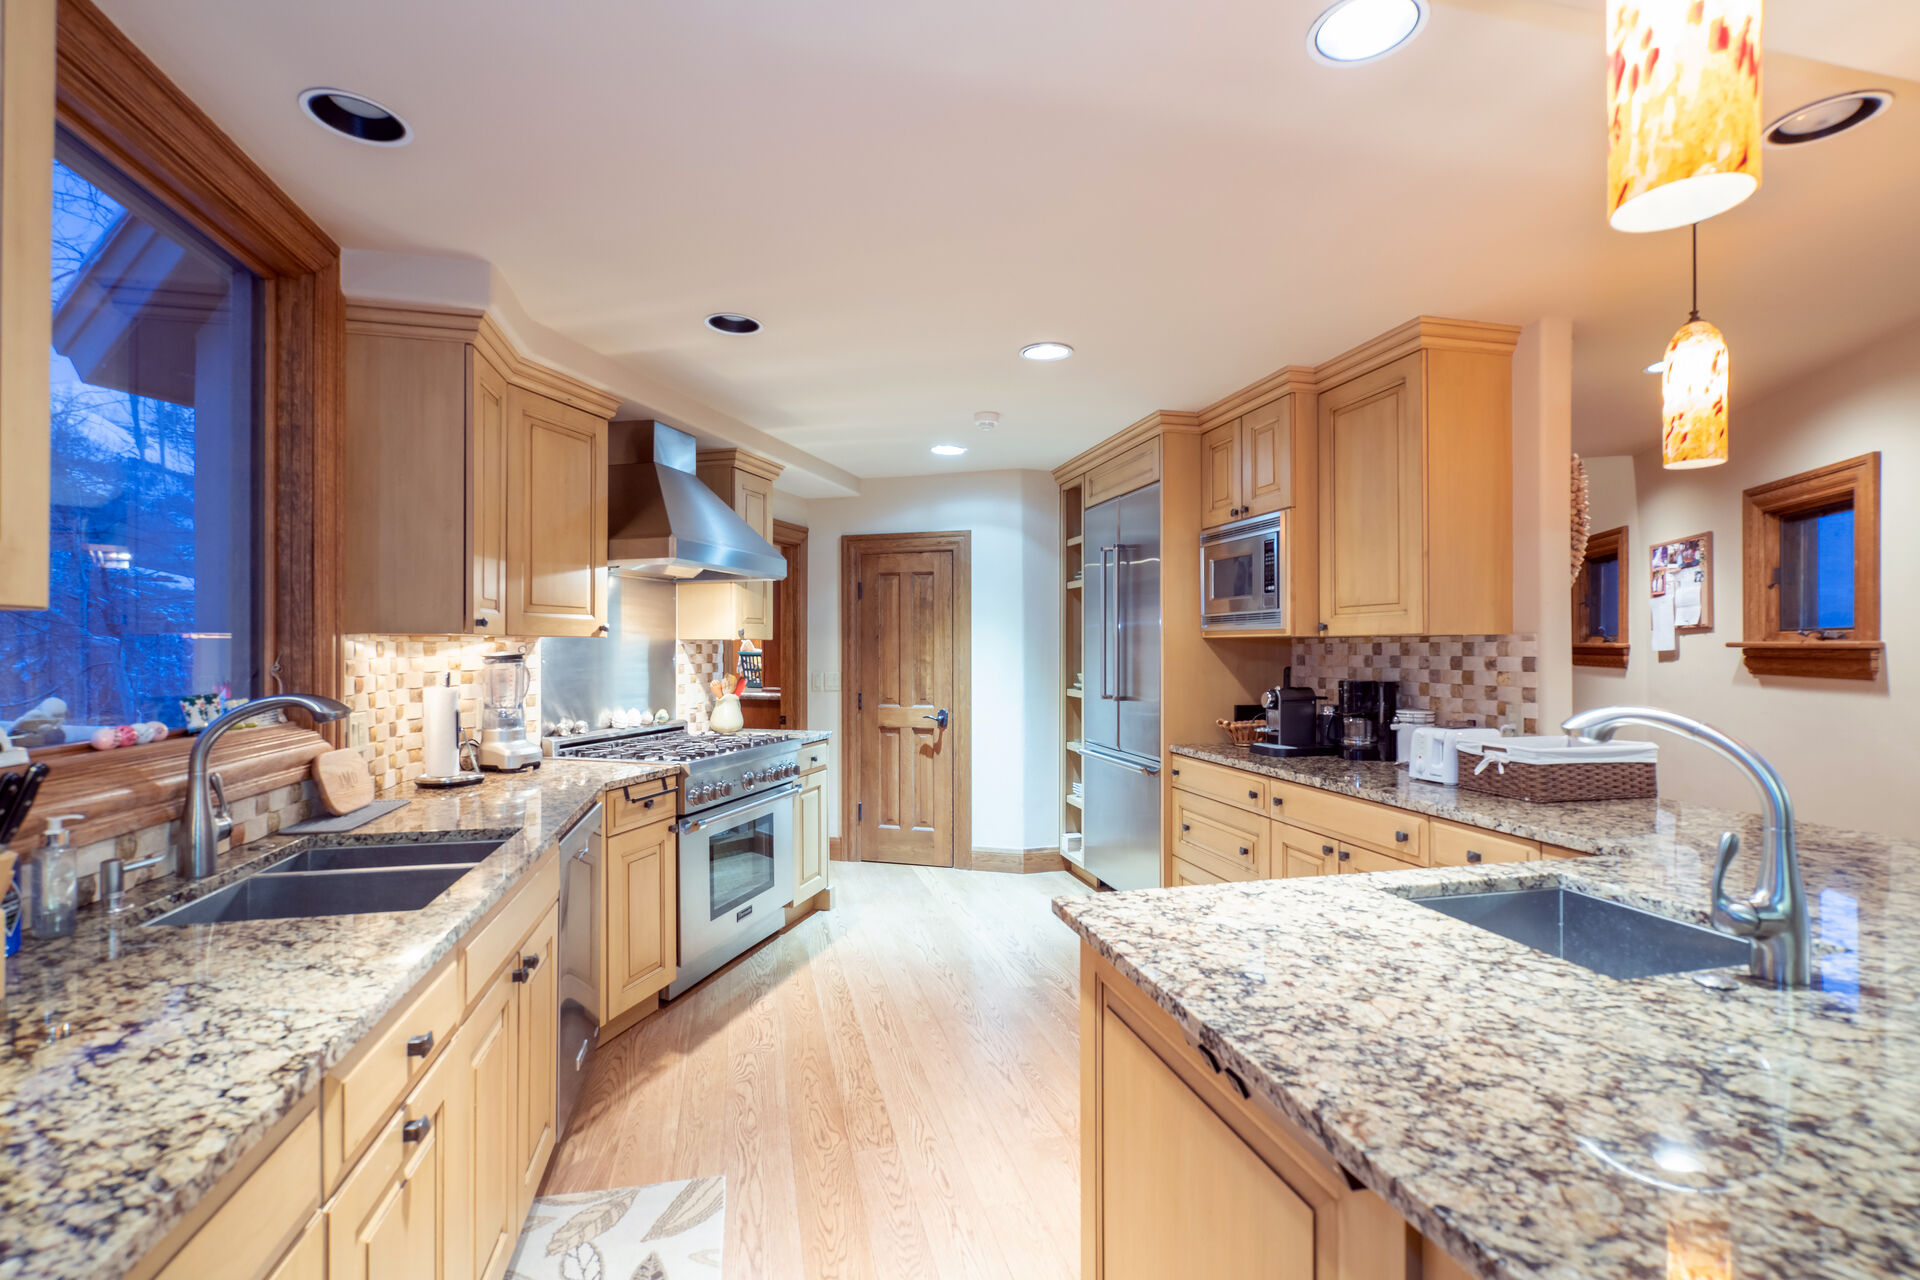 The kitchen of this Telluride golf rental, with two sinks and stainless steel appliances.